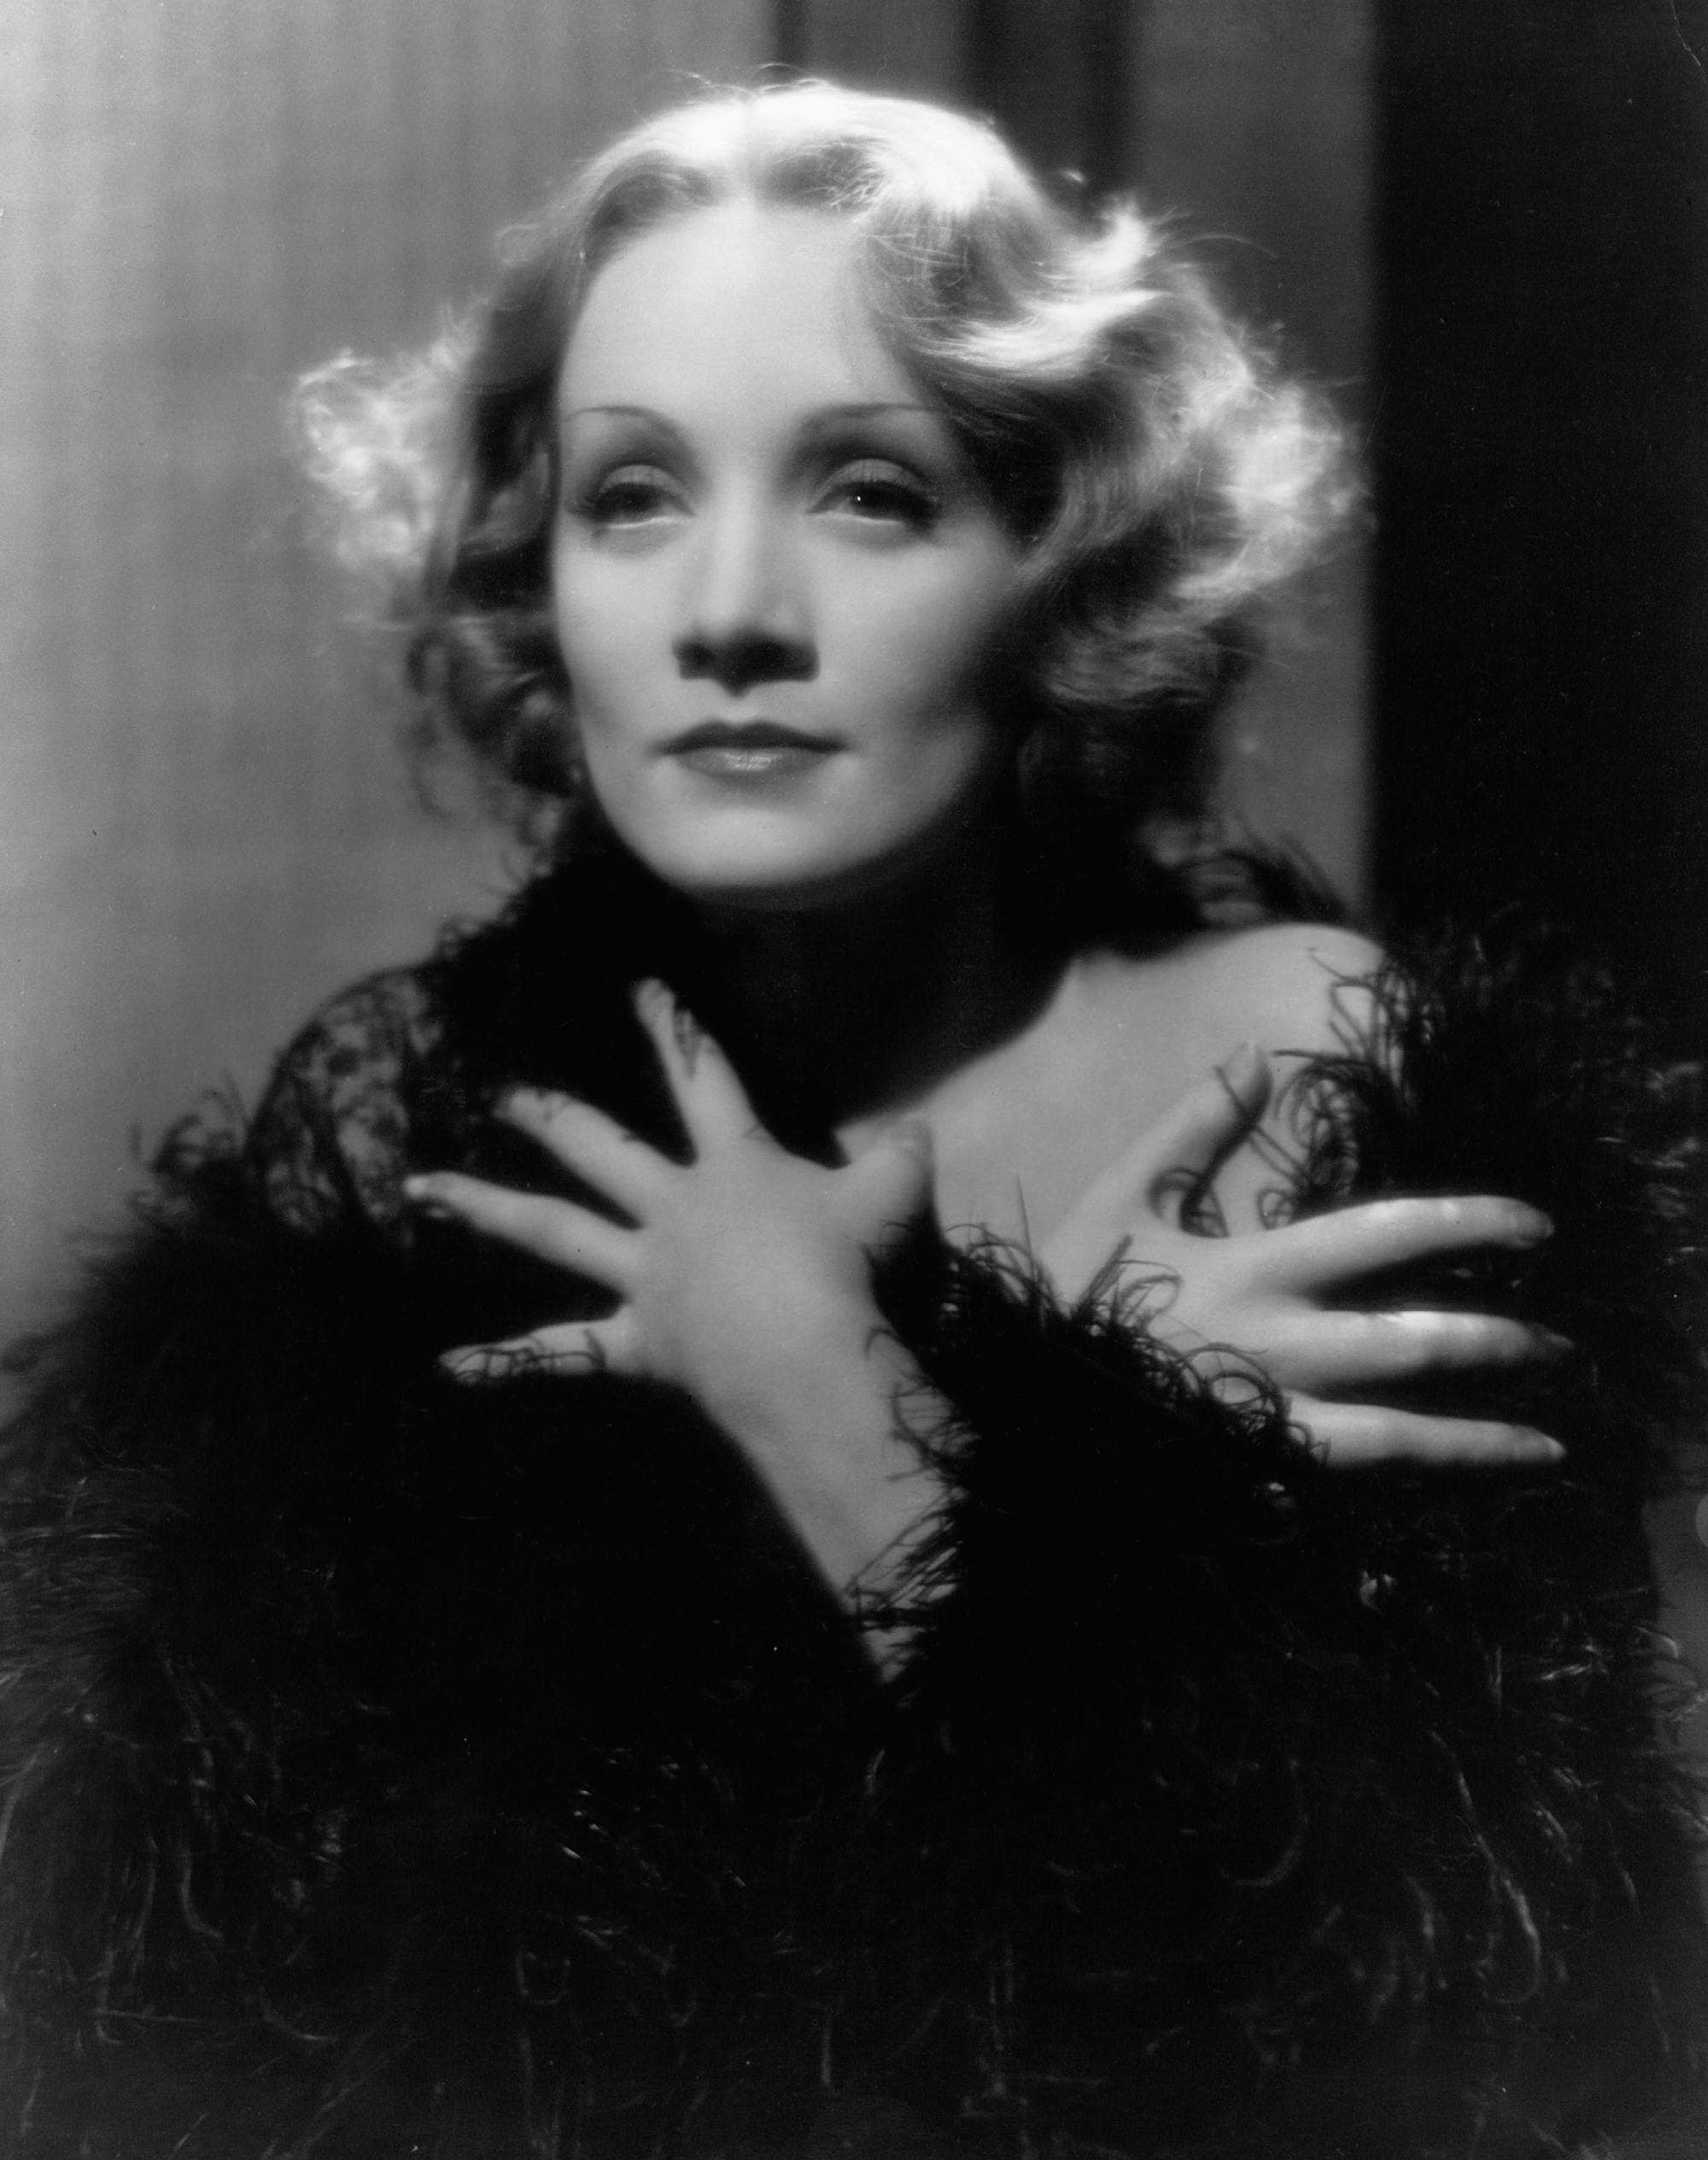 1930s hairstyles: Marlene Dietrich black and white promo photo with blonde fluffy vintage waves on bob length hair